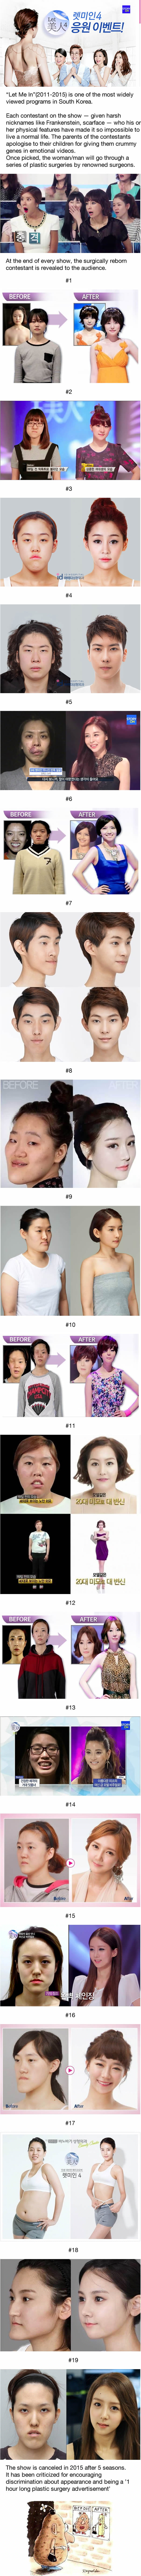 19 Before And After Photos From Korean Plastic Surgery Makeover Show